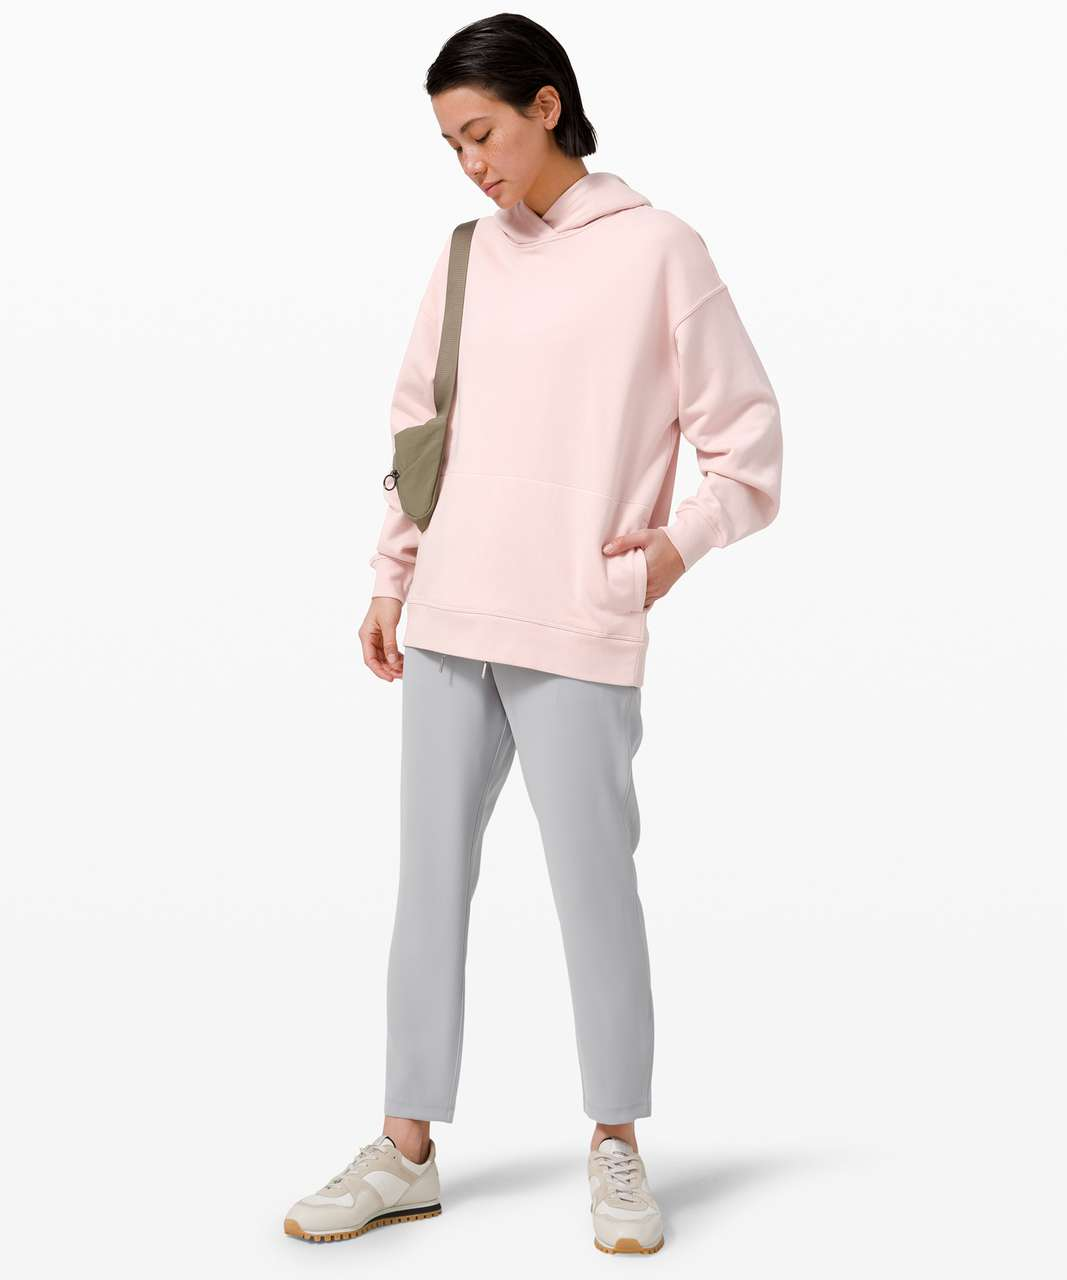 Lululemon Perfectly Oversized Hoodie - Pink Bliss